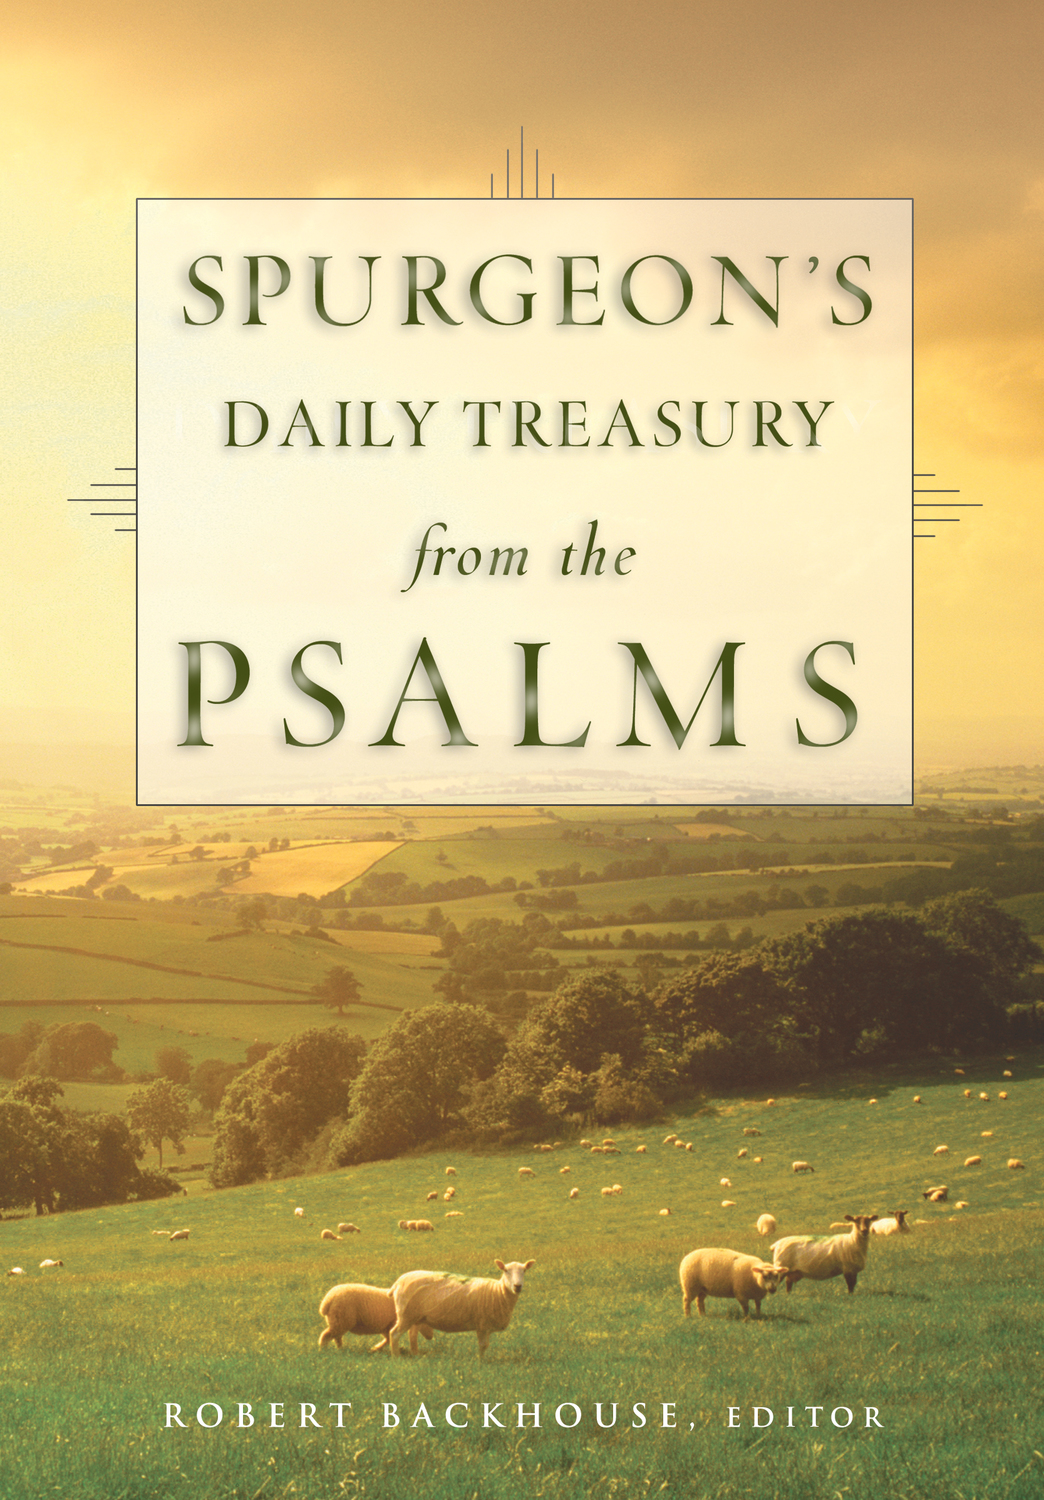 Spurgeon's Daily Treasury from the Psalms